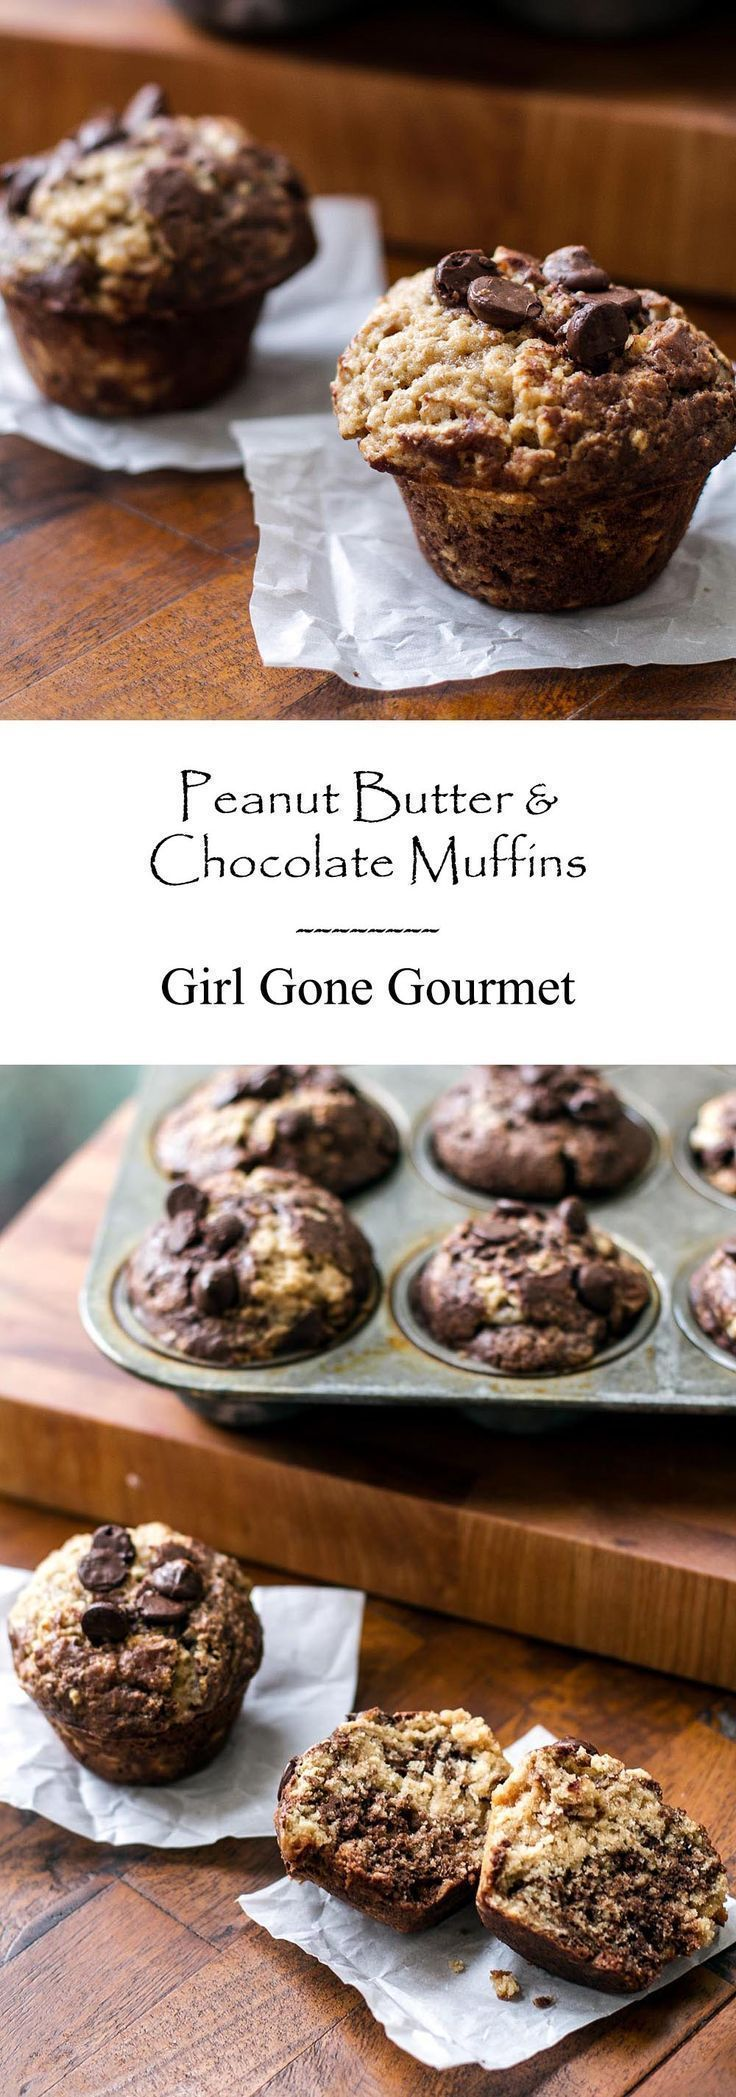 Start the day right with some peanut butter & chocolate!   girlgonegourmet.com